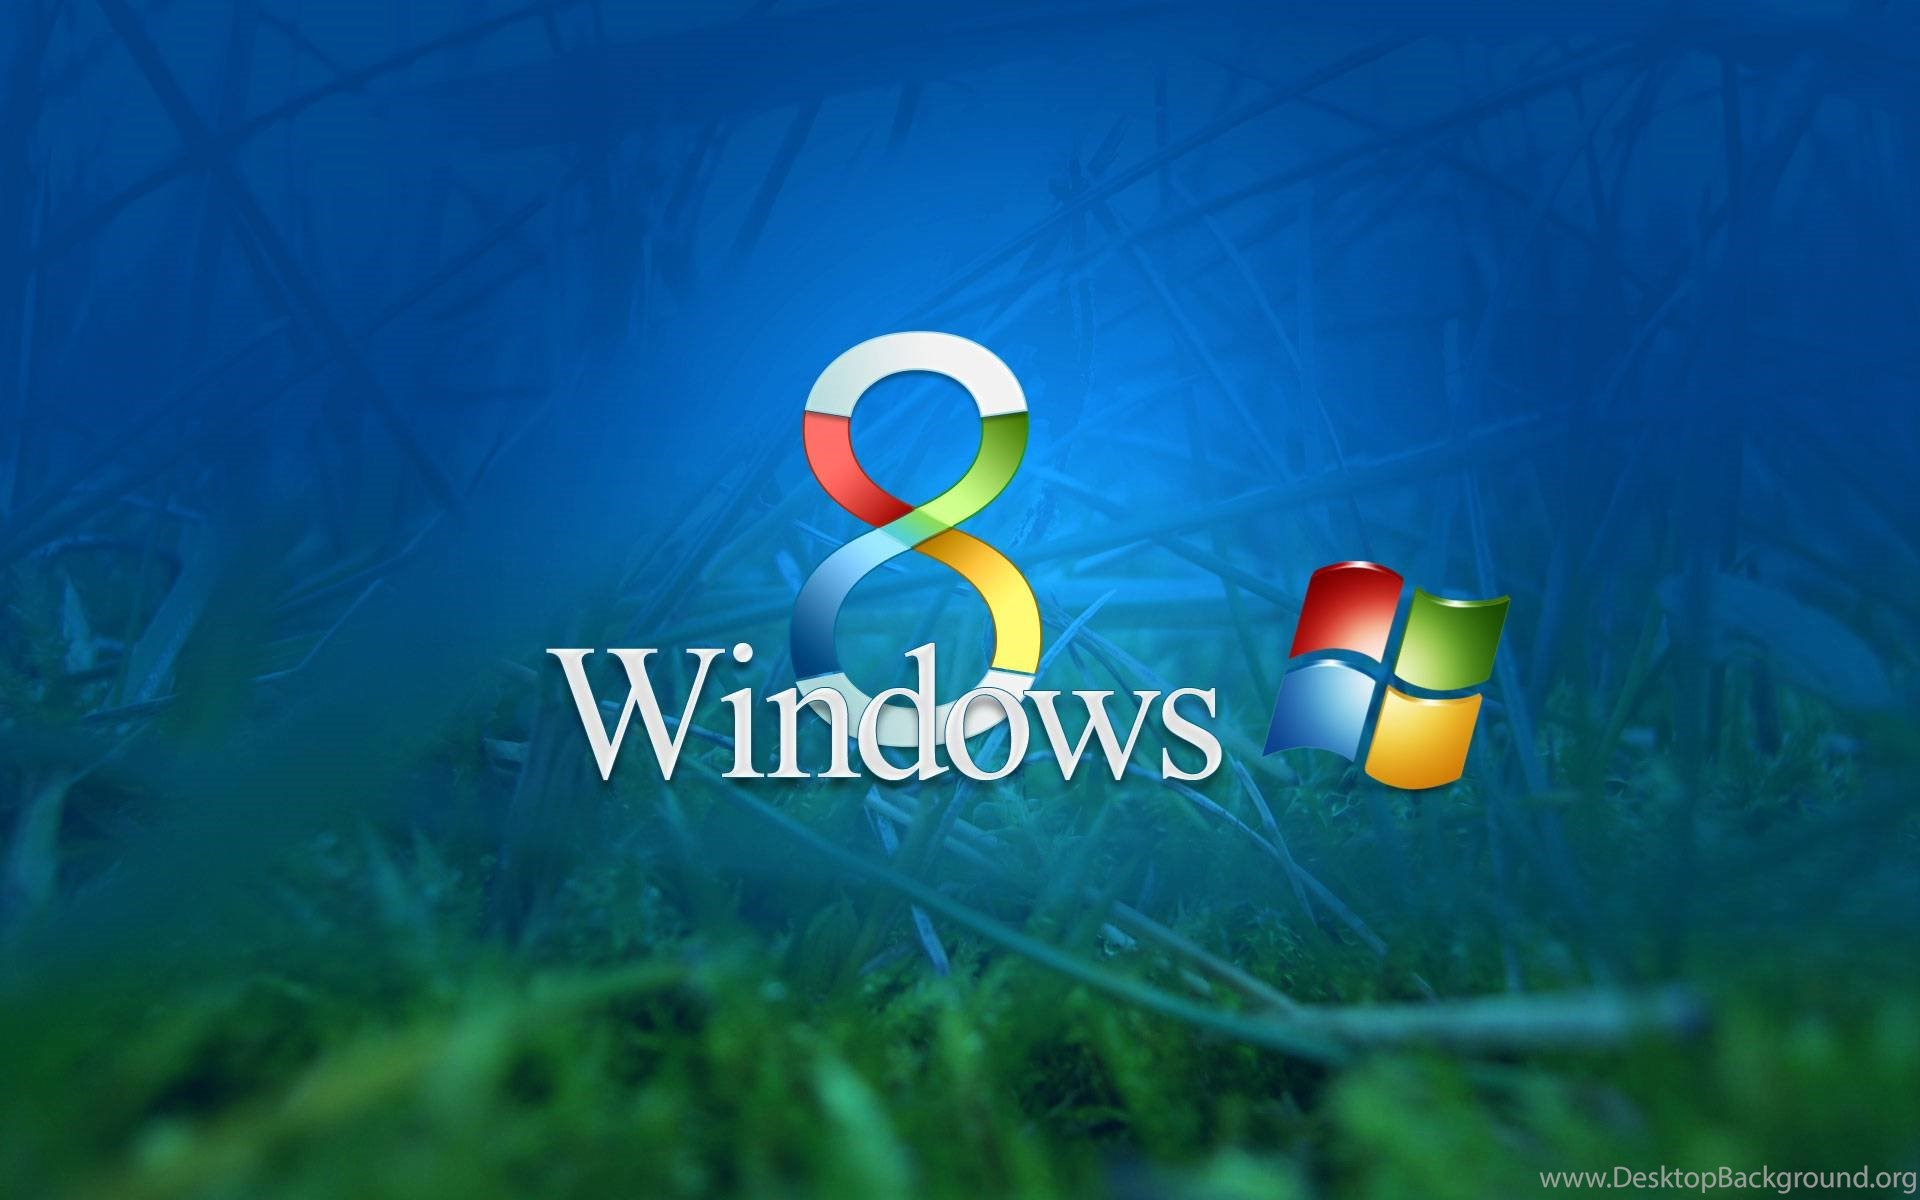 wallpapers 3d animation for windows 8 desktop background